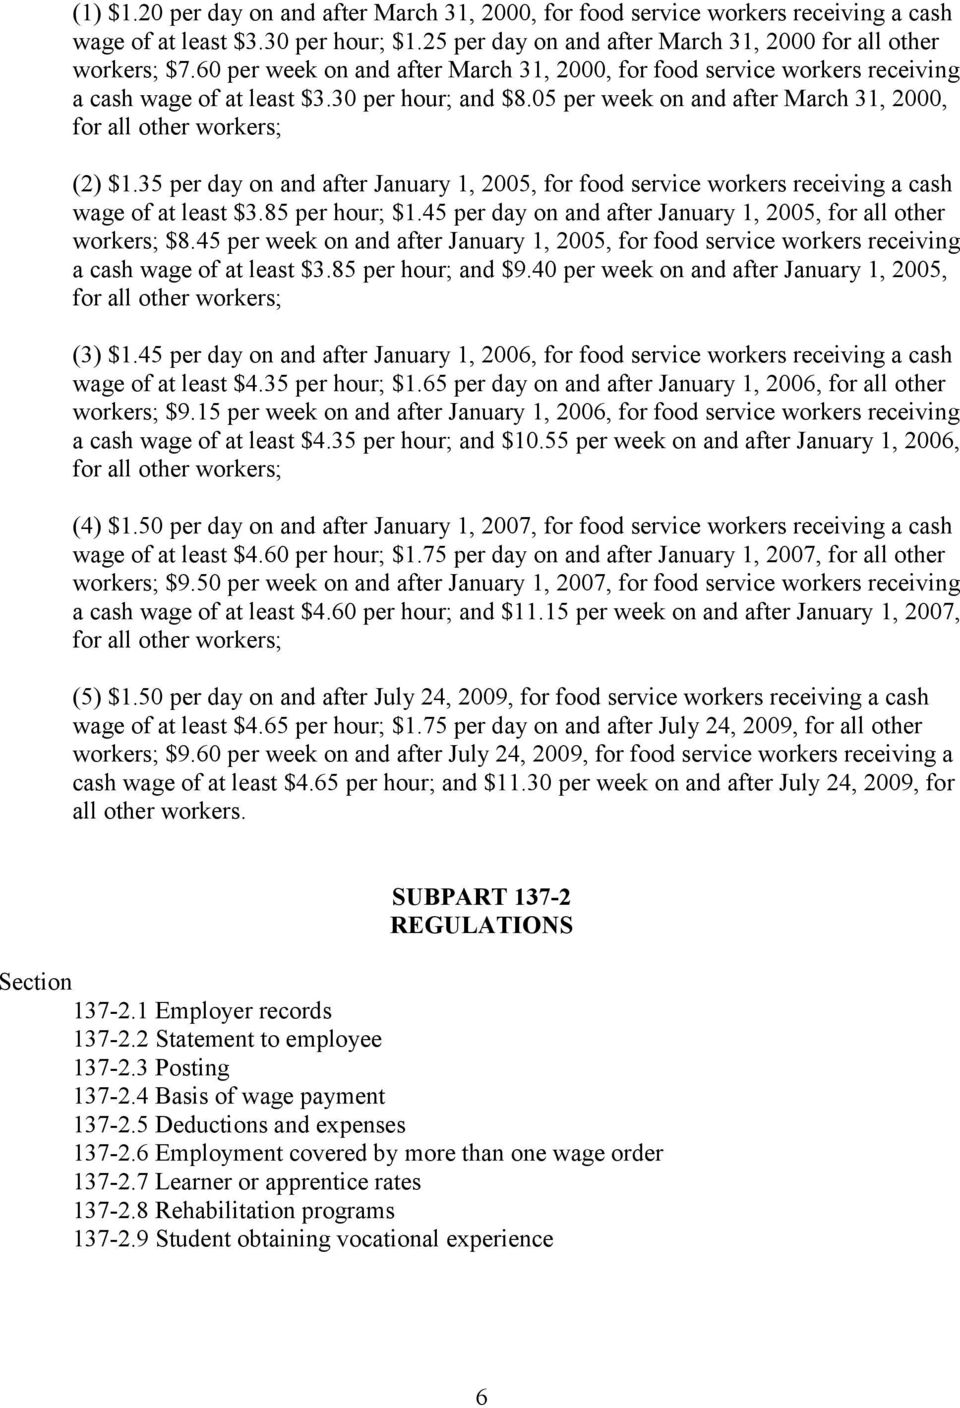 35 per day on and after January 1, 2005, for food service workers receiving a cash wage of at least $3.85 per hour; $1.45 per day on and after January 1, 2005, for all other workers; $8.